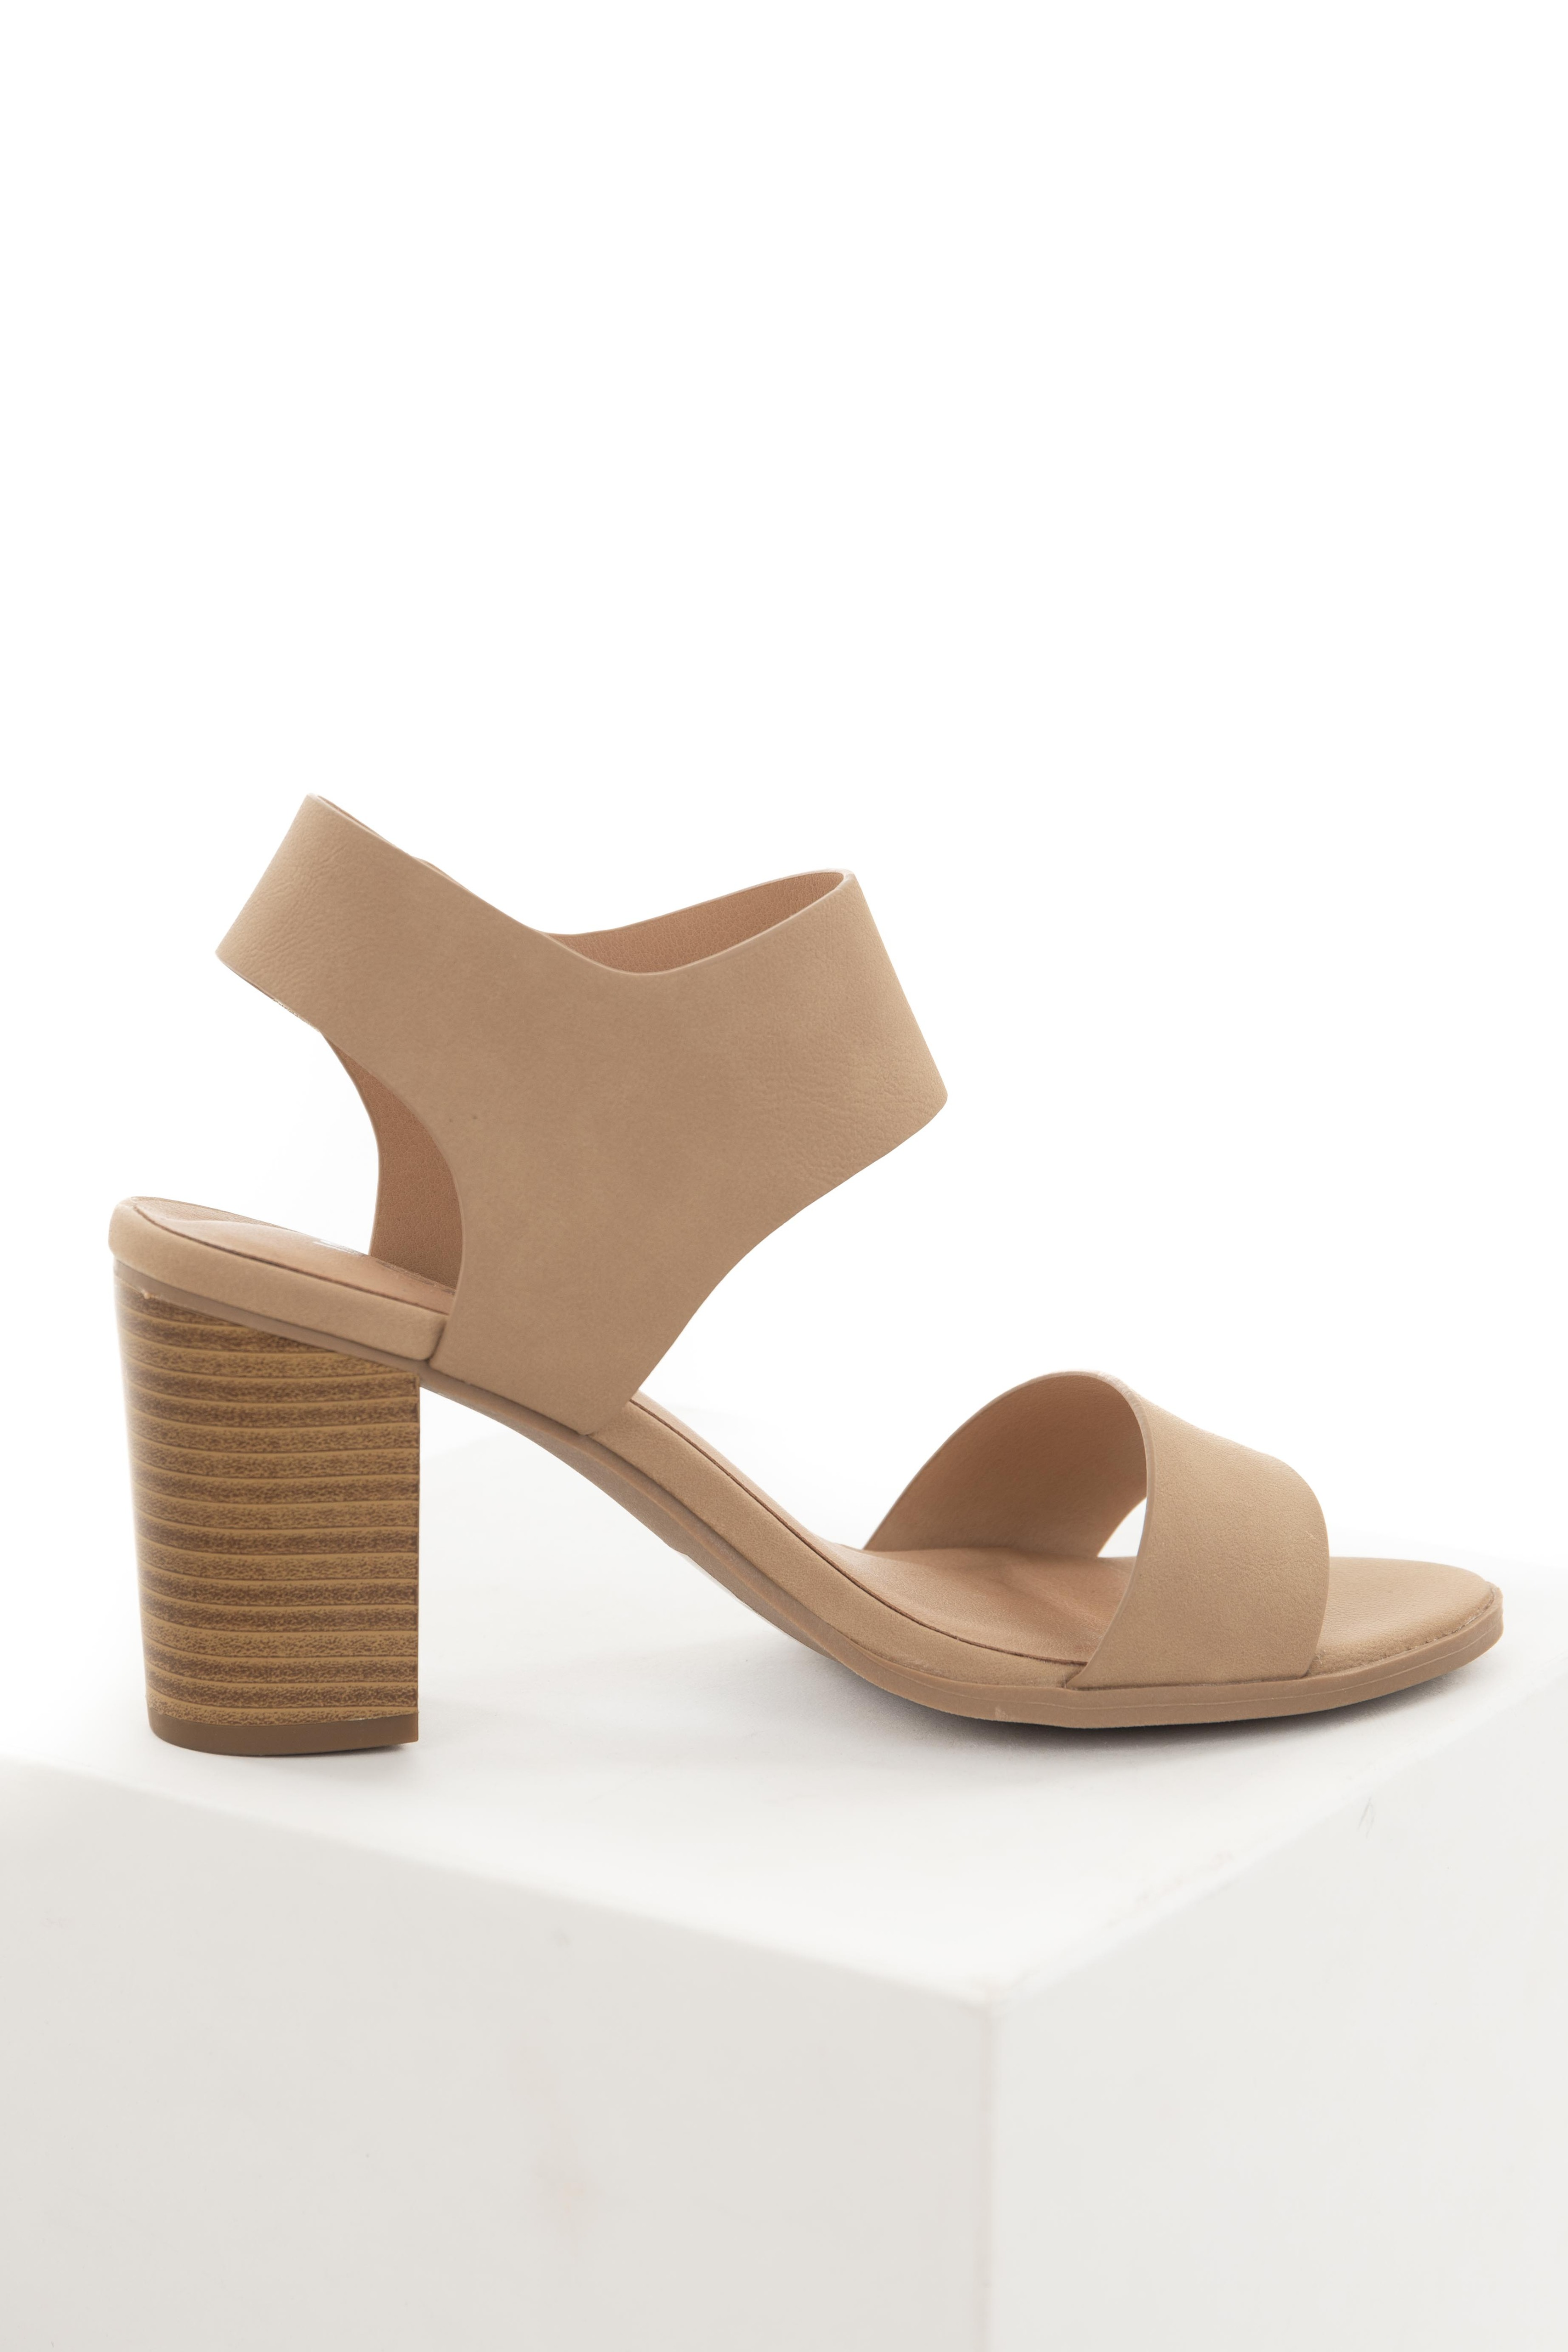 Nude Stacked Heels with Velcro Sling Back